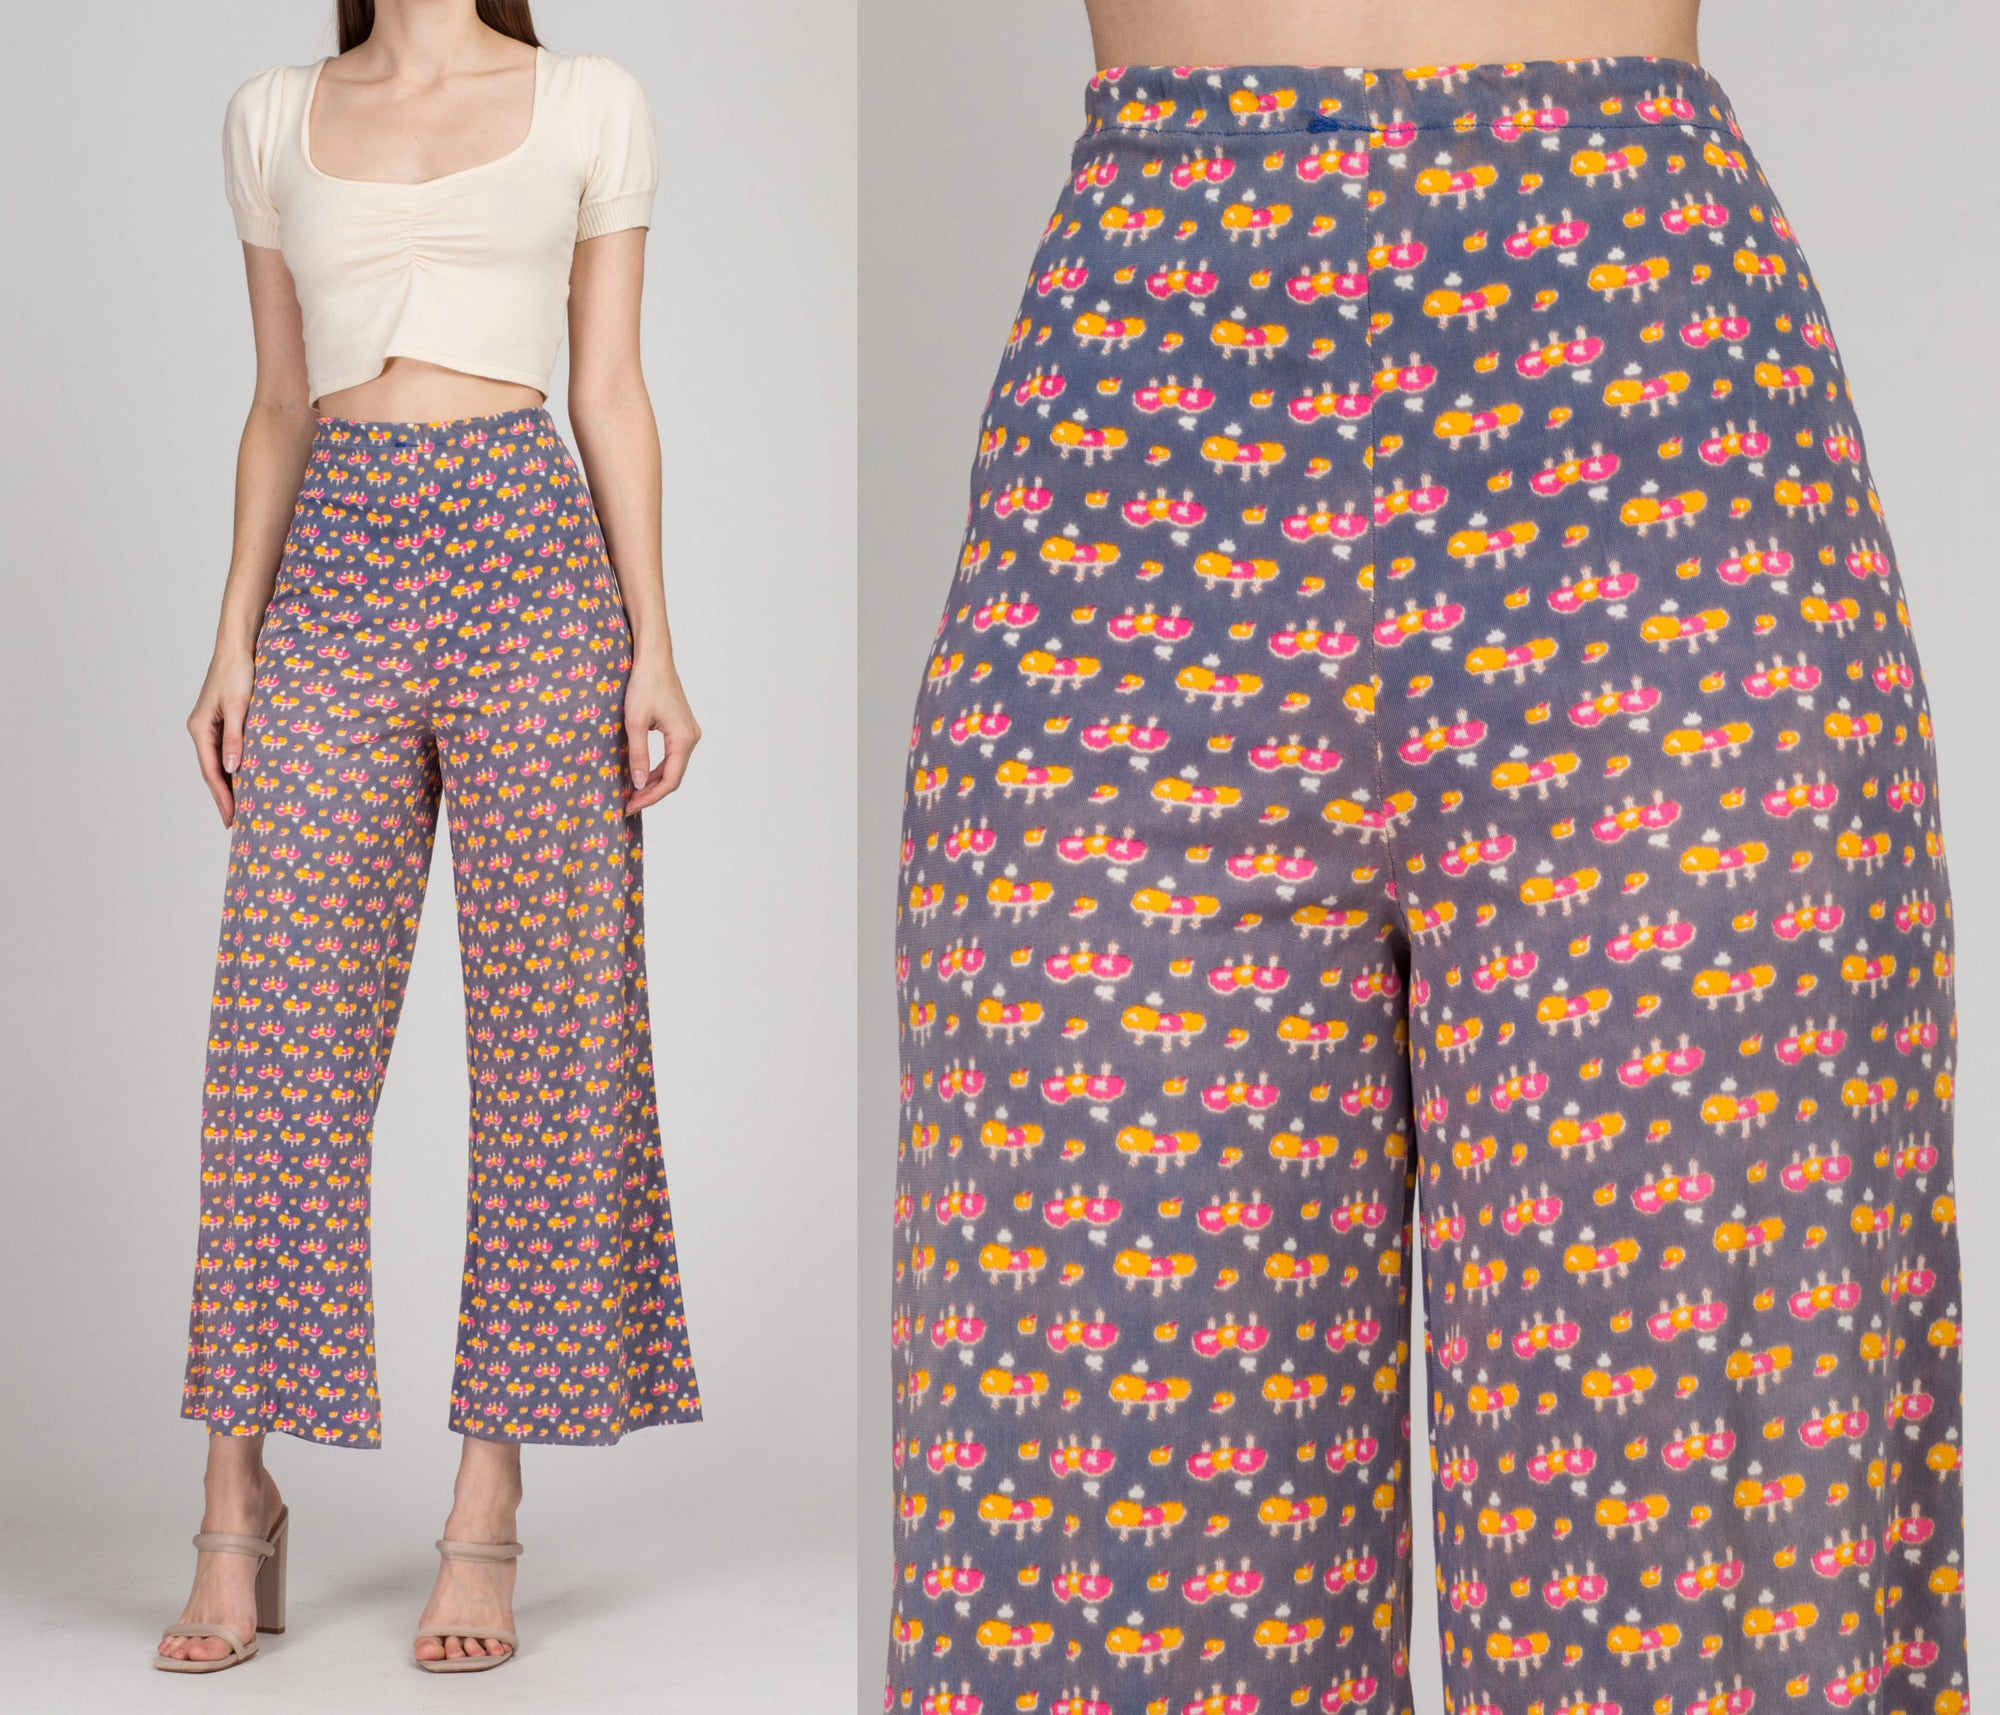 70s Tree Print High Waist Flared Pants - Large | Vintage Boho Wide Leg Polyester Trousers